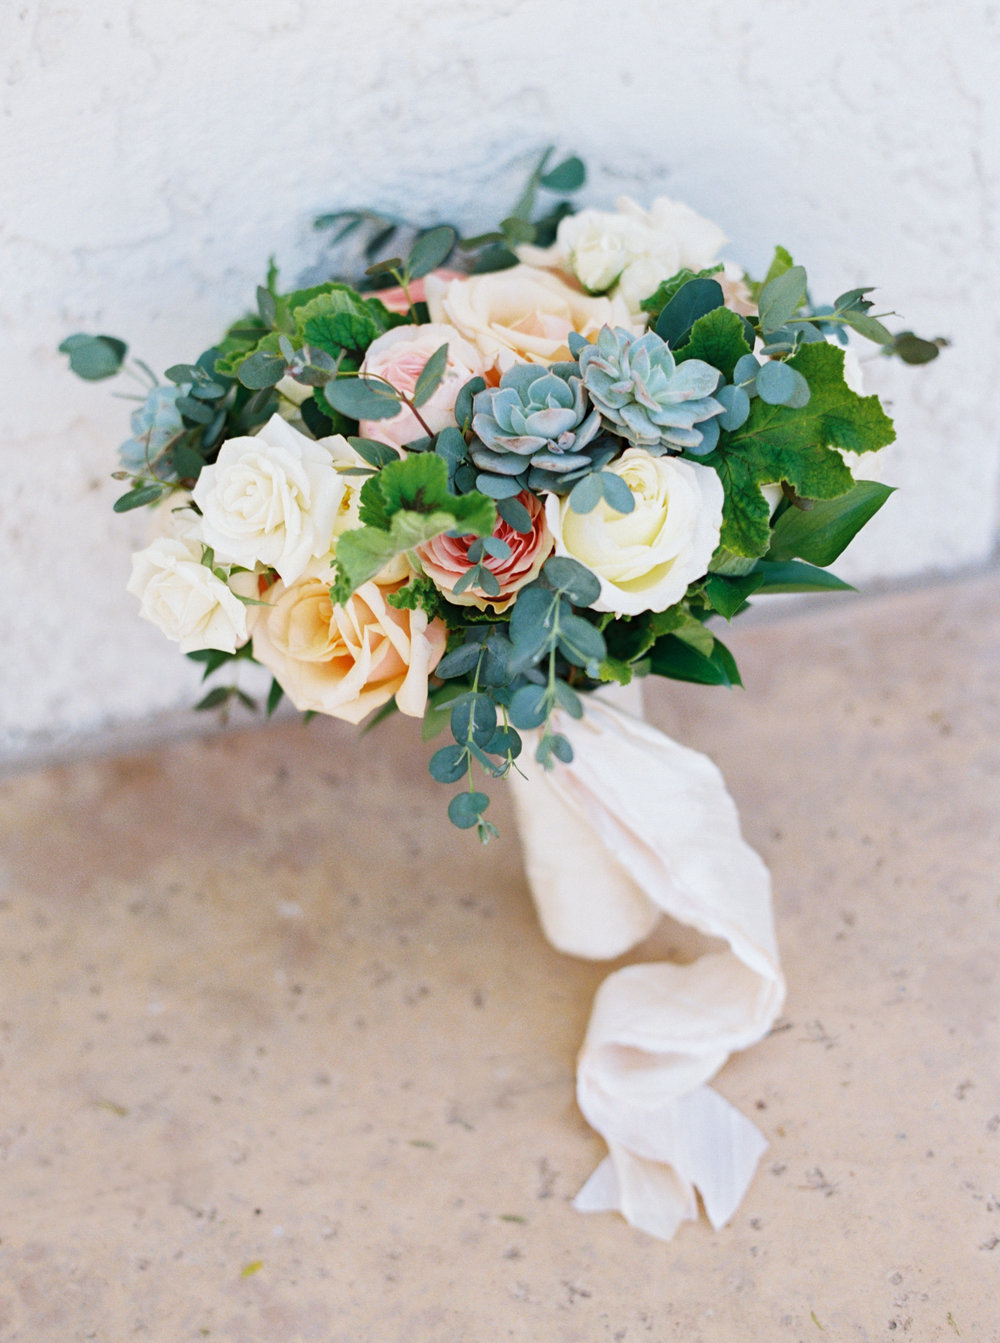 wedding, wedding planner, arizona wedding, destination wedding, bride and groom, wedding bouquet